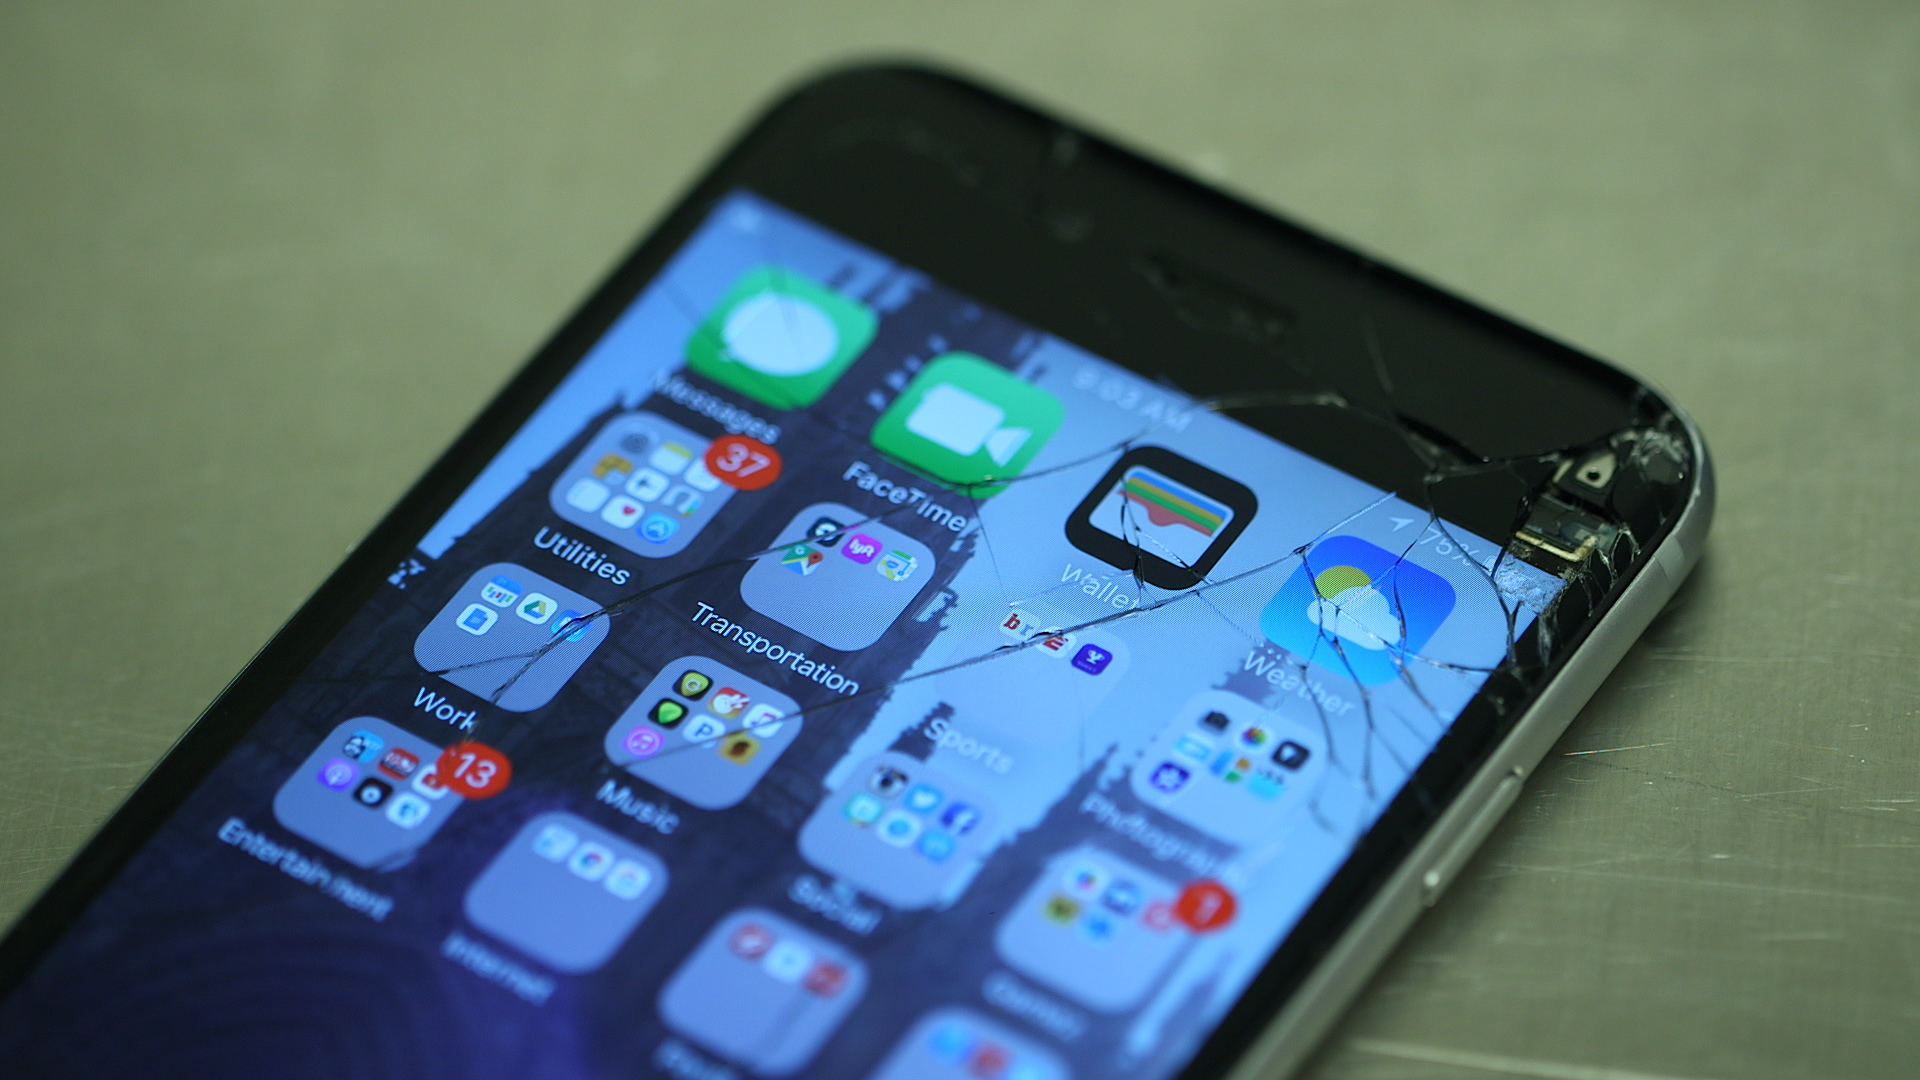 Video: What to do when your iPhone's screen breaks